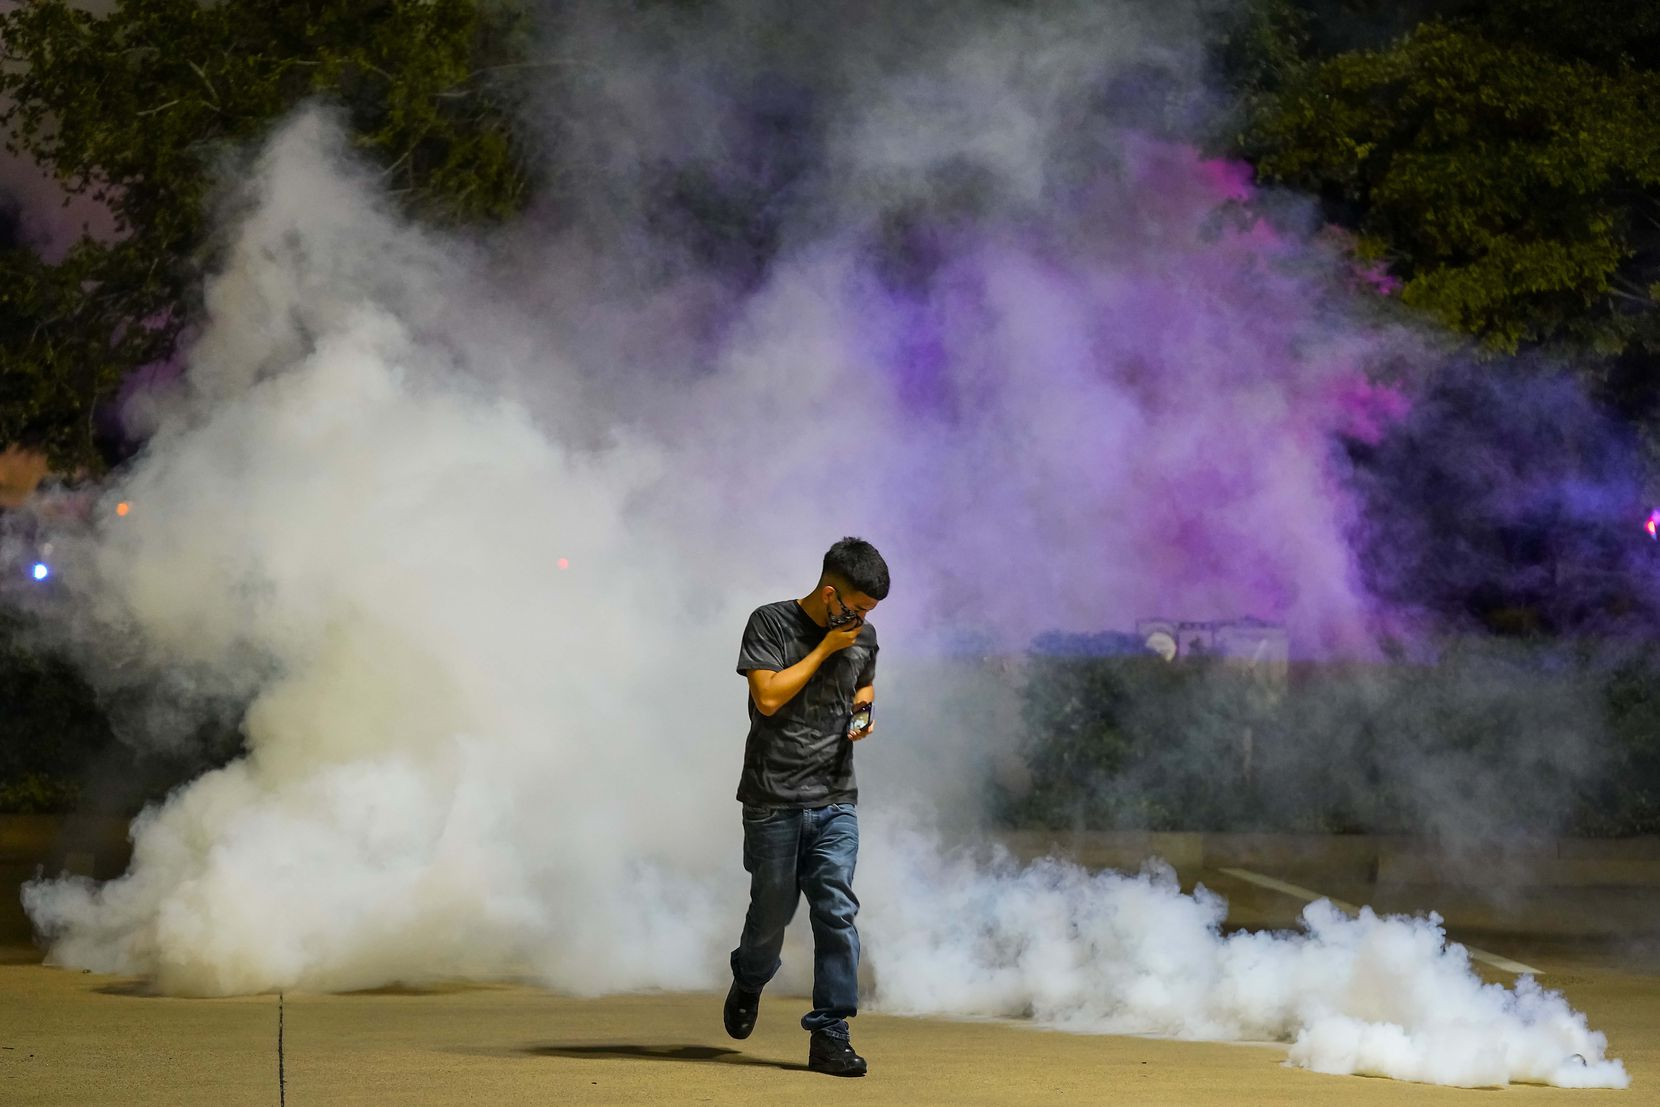 A protester runs away after a canister of teargas landed at his feat as Dallas police attempt to disperse protesters at the corner of Lamar and Young Streets as they march against police brutality on Friday, May 29, 2020, in Dallas.